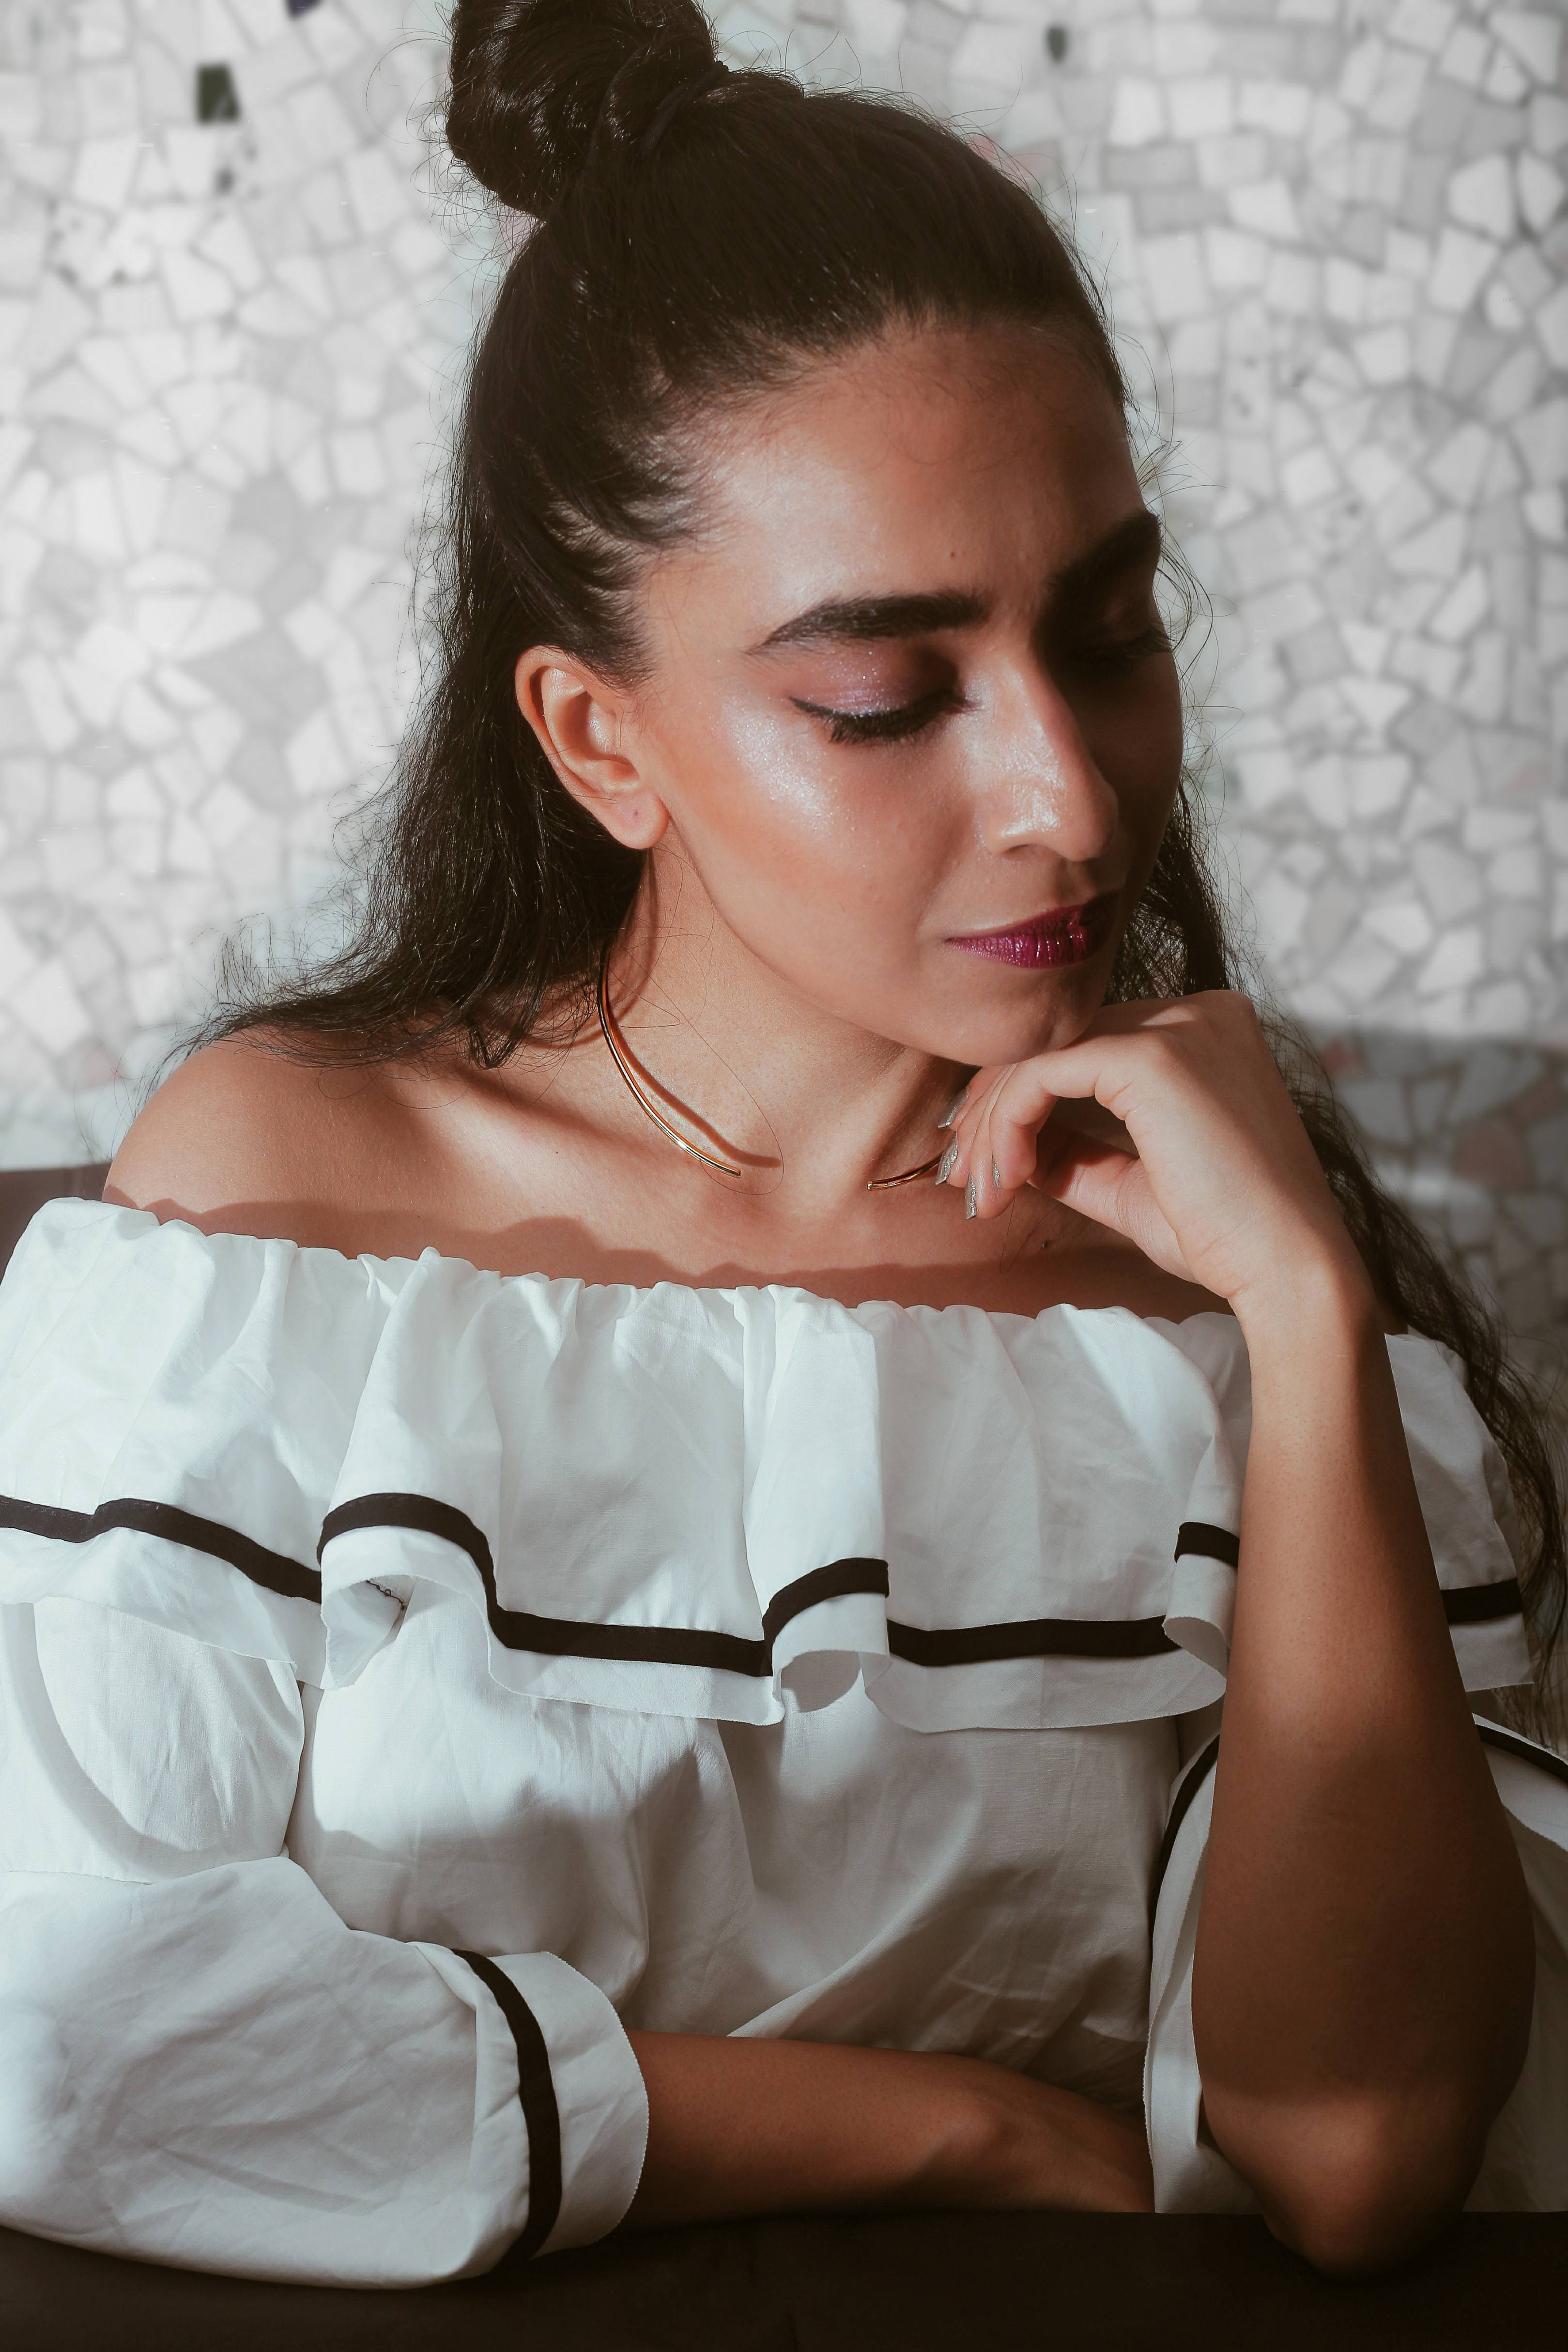 accessories, Earrings, jewelry, statement piece, statement jewelry, jewellery, makeup, editorial shoot, contouring, gold jewelry, minimal, miss match earrings